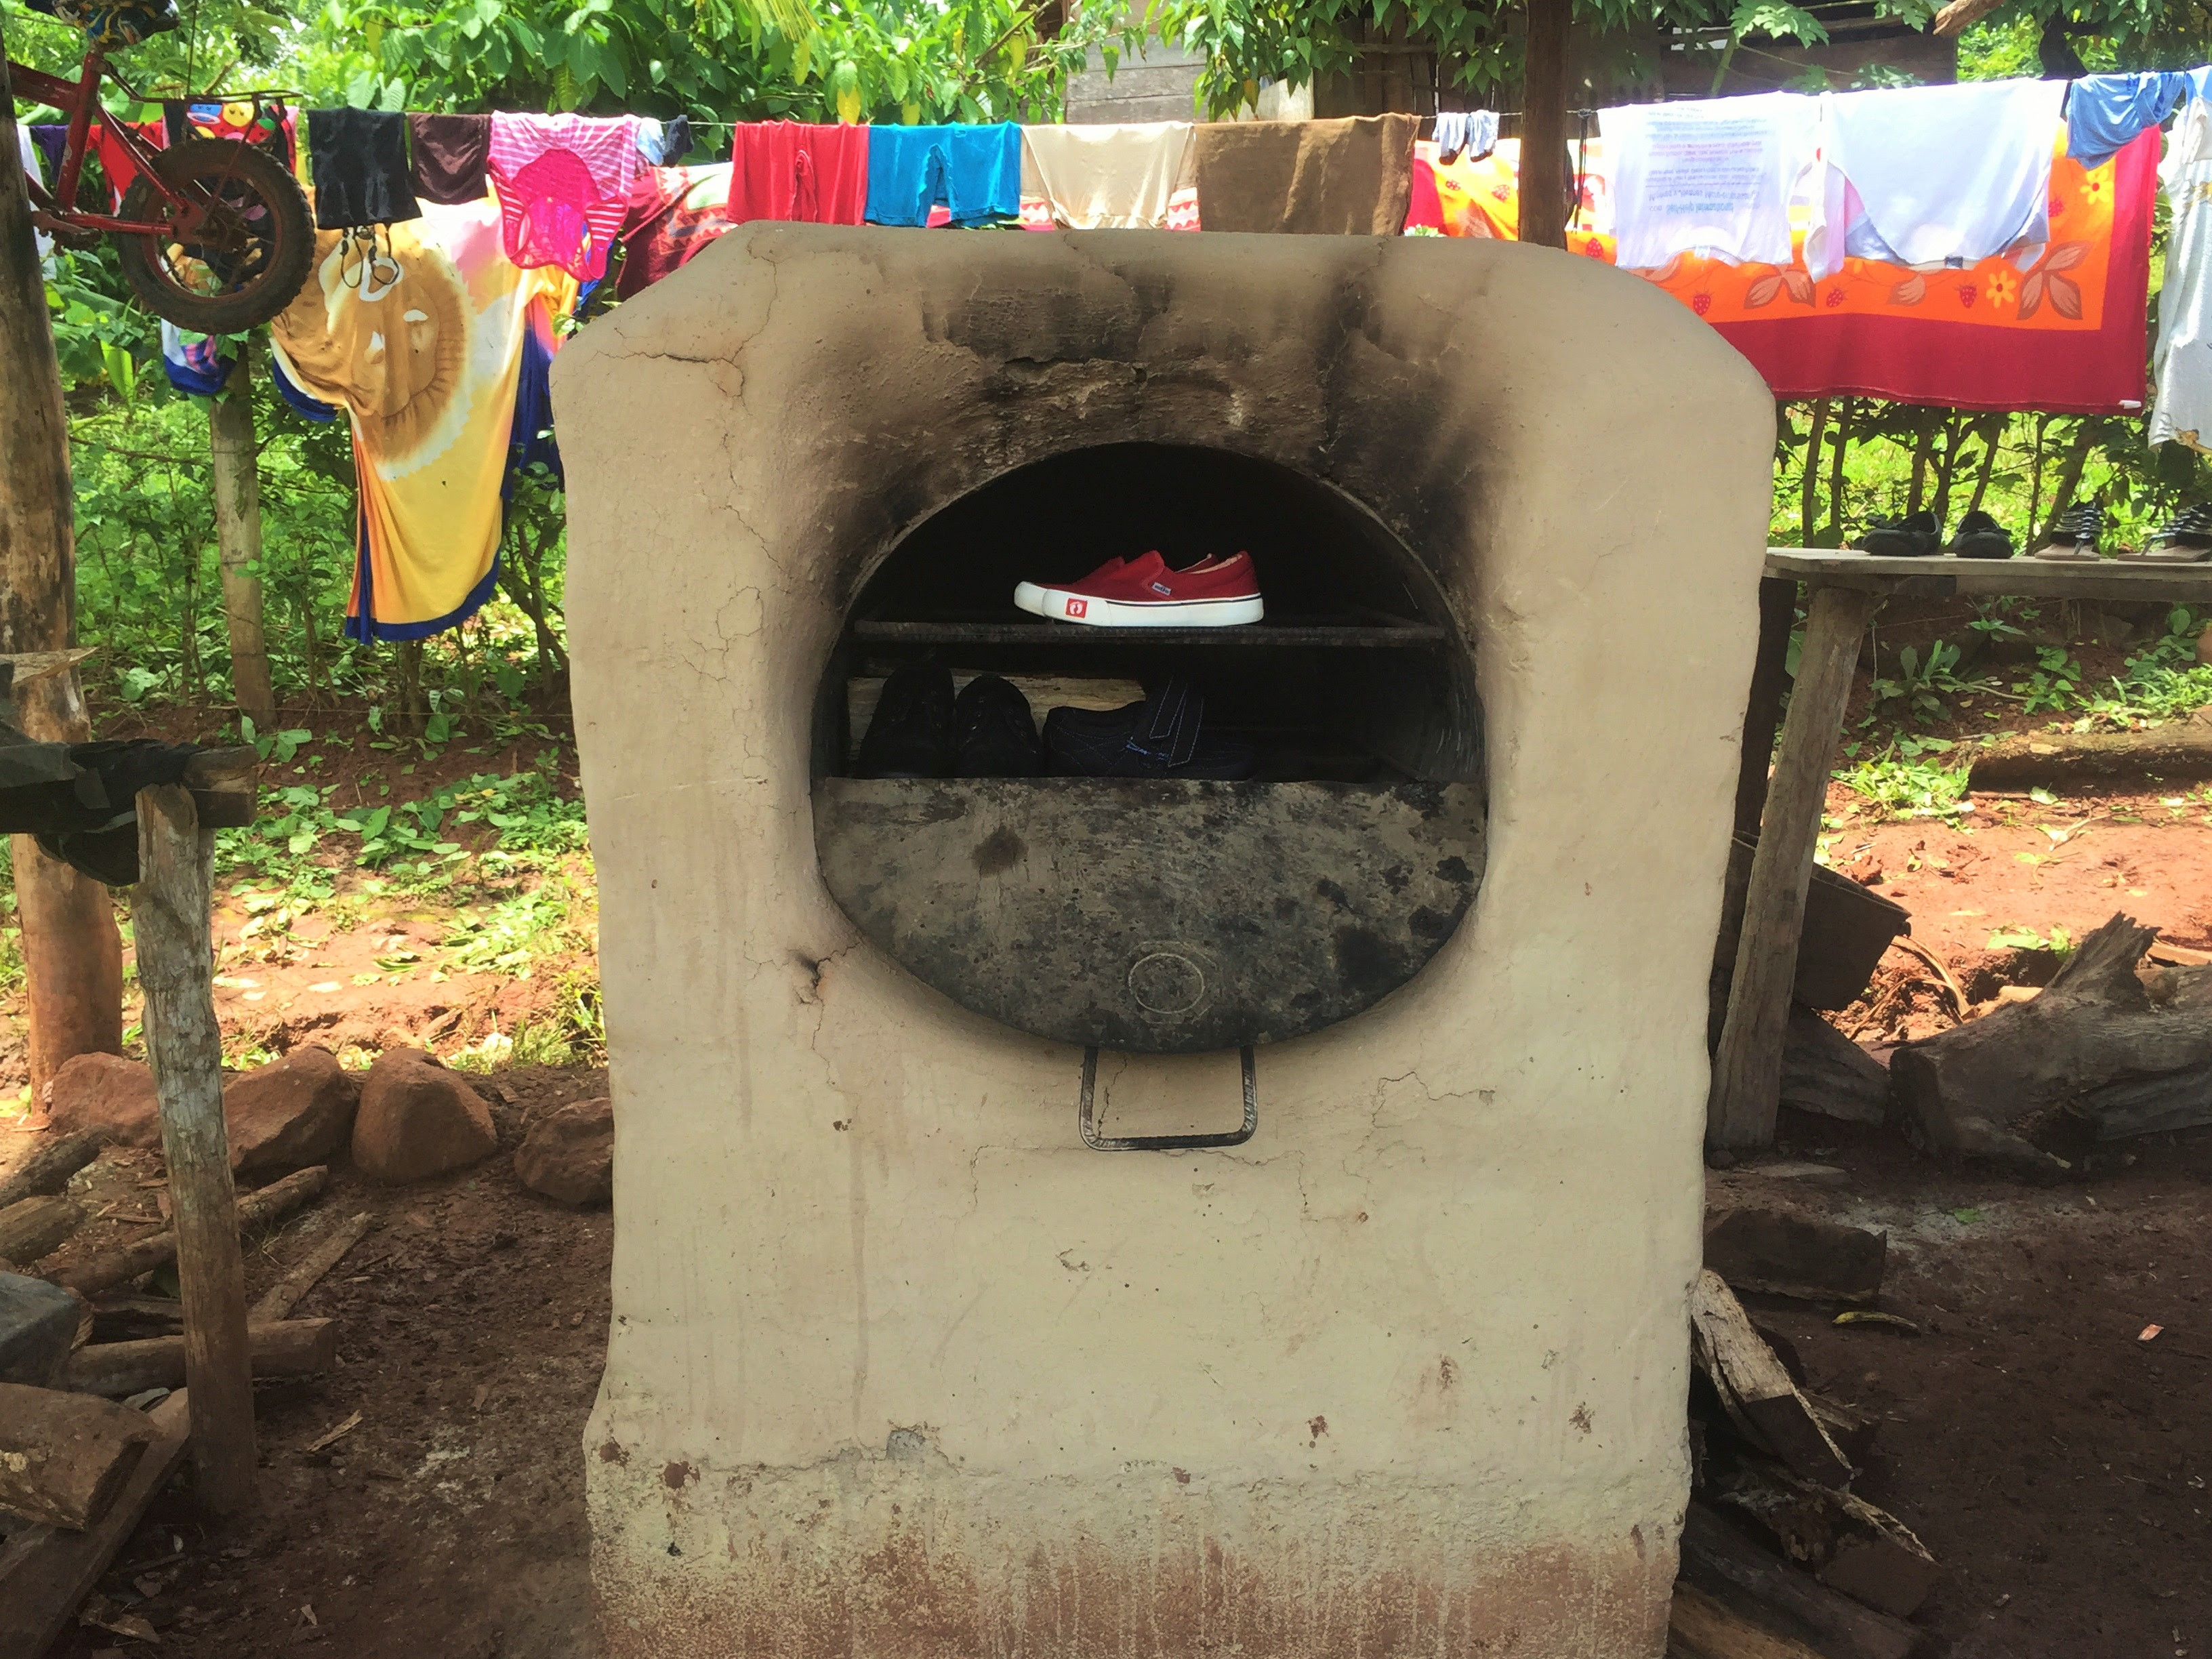 Jering's family oven which is used as a dryer during rainy seasons